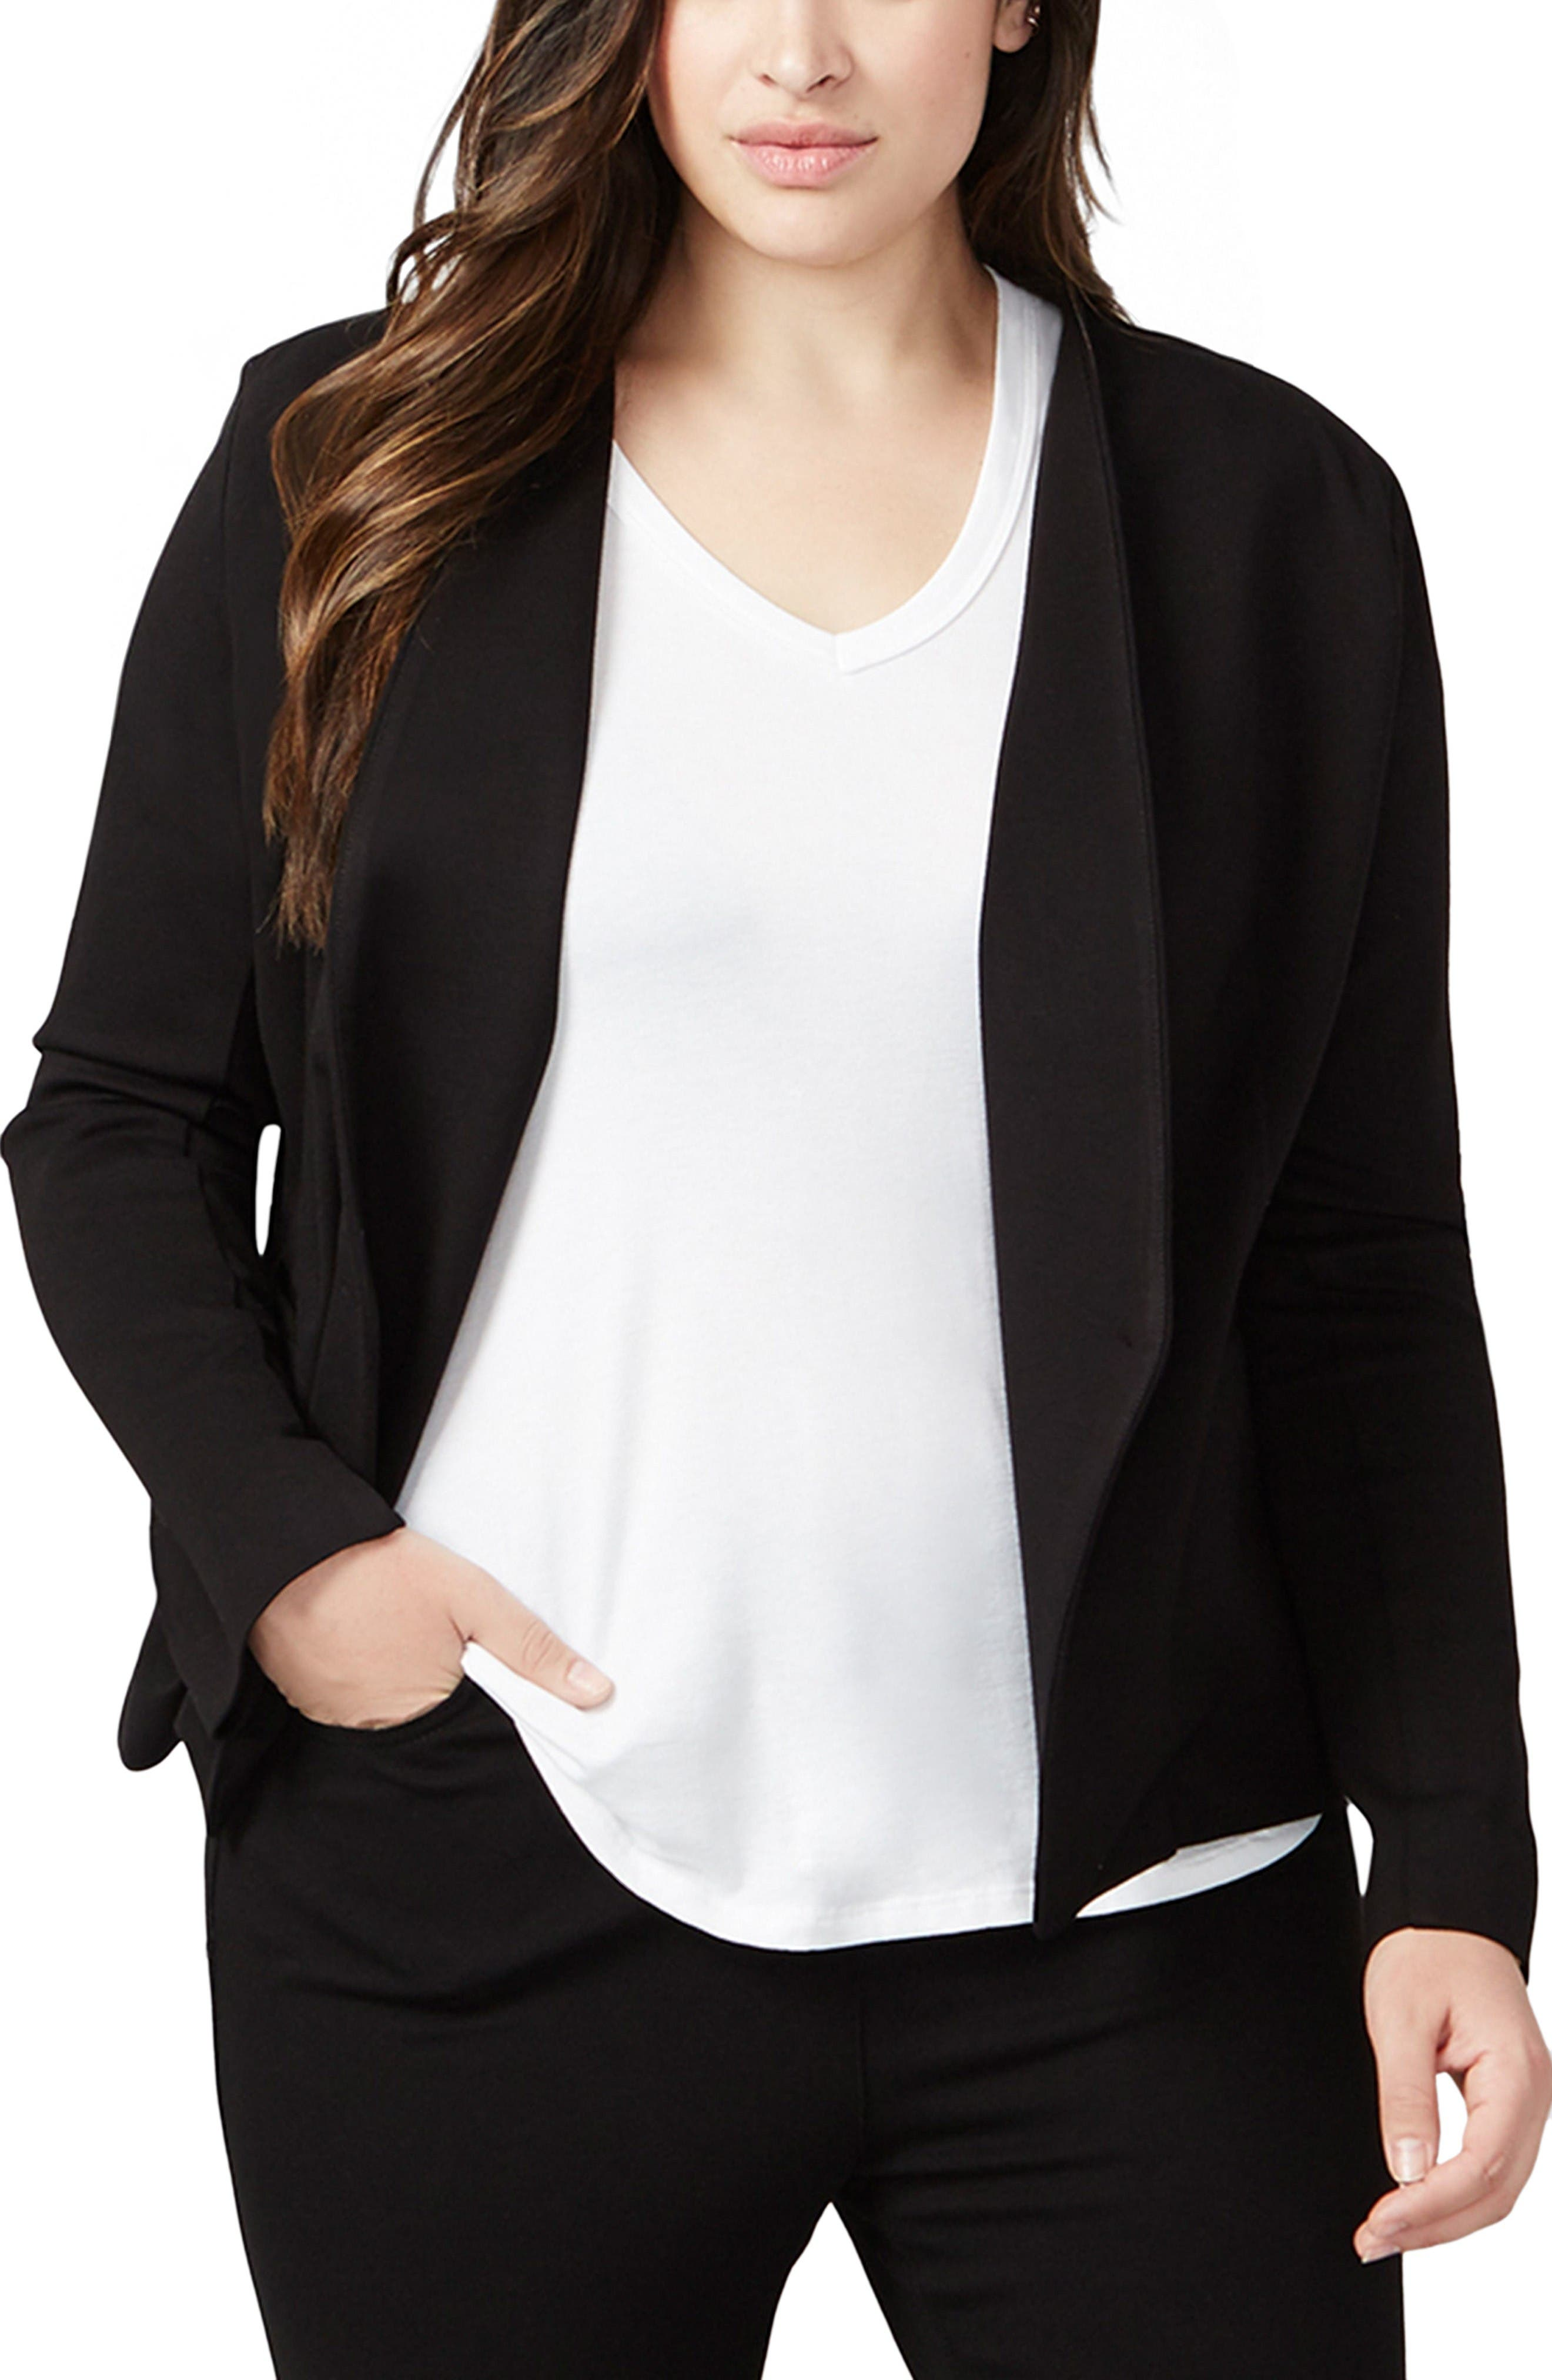 Alternate Image 1 Selected - RACHEL Rachel Roy Ponte Knit Jacket (Plus Size)